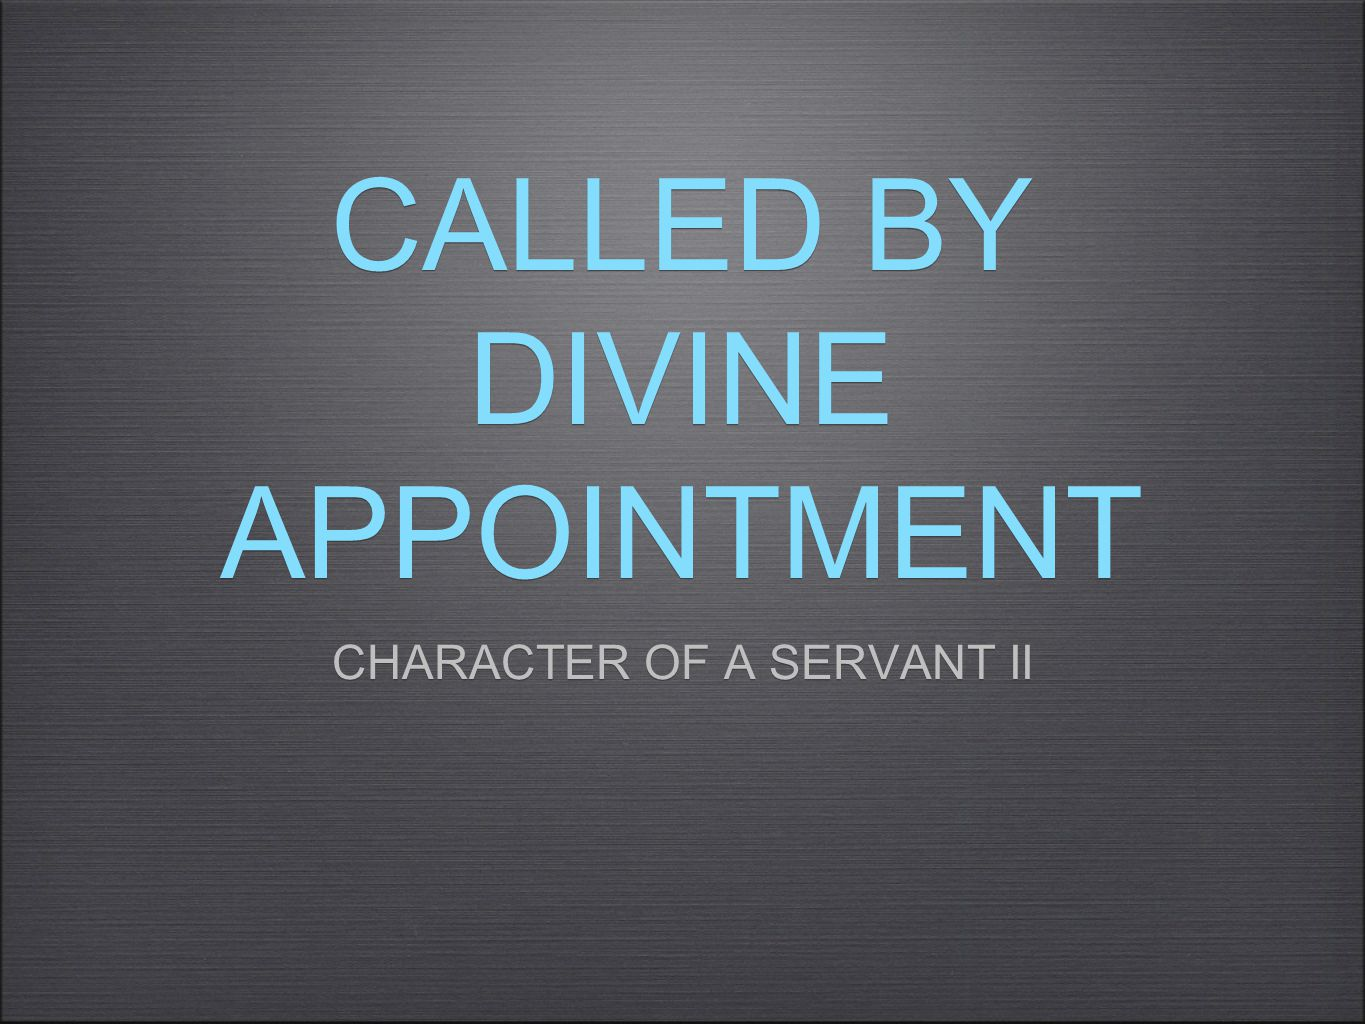 CALLED BY DIVINE APPOINTMENT CHARACTER OF A SERVANT II CHARACTER OF A SERVANT II